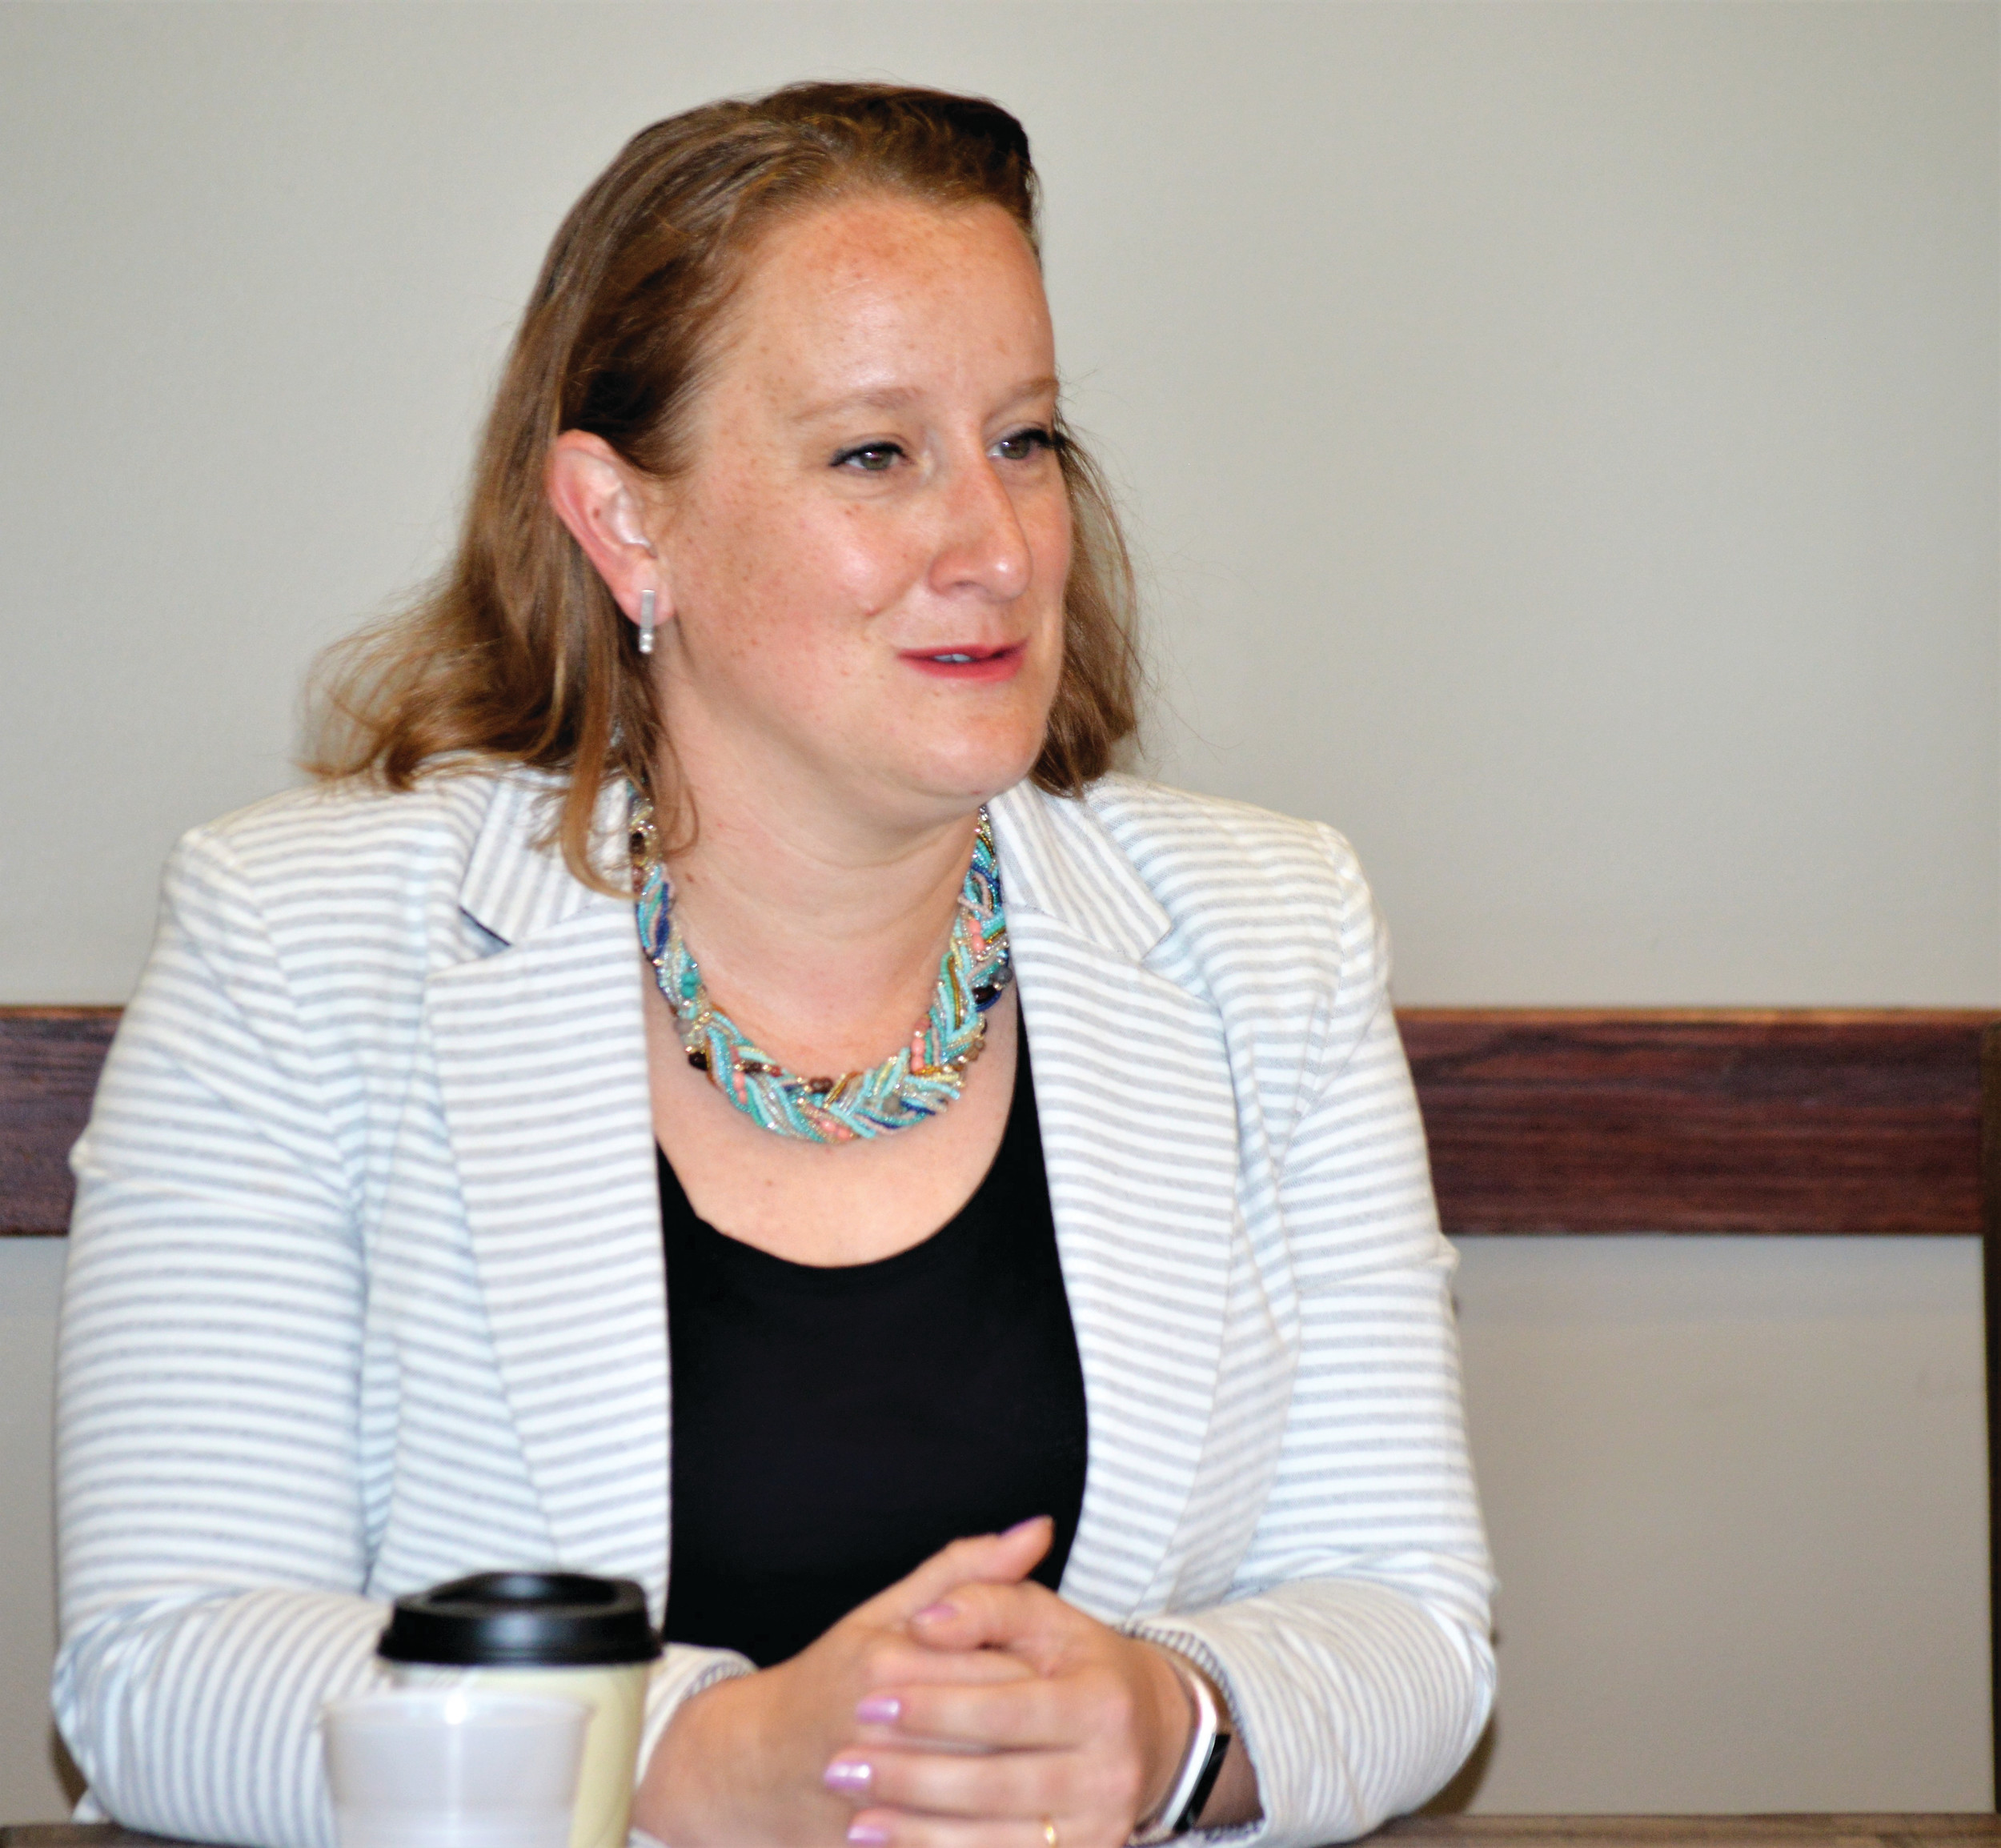 City Councilor Emma  Pinter speaks at the Jeff-West Community Forum Aug. 25. Pinter is seeking reelection to her seat.